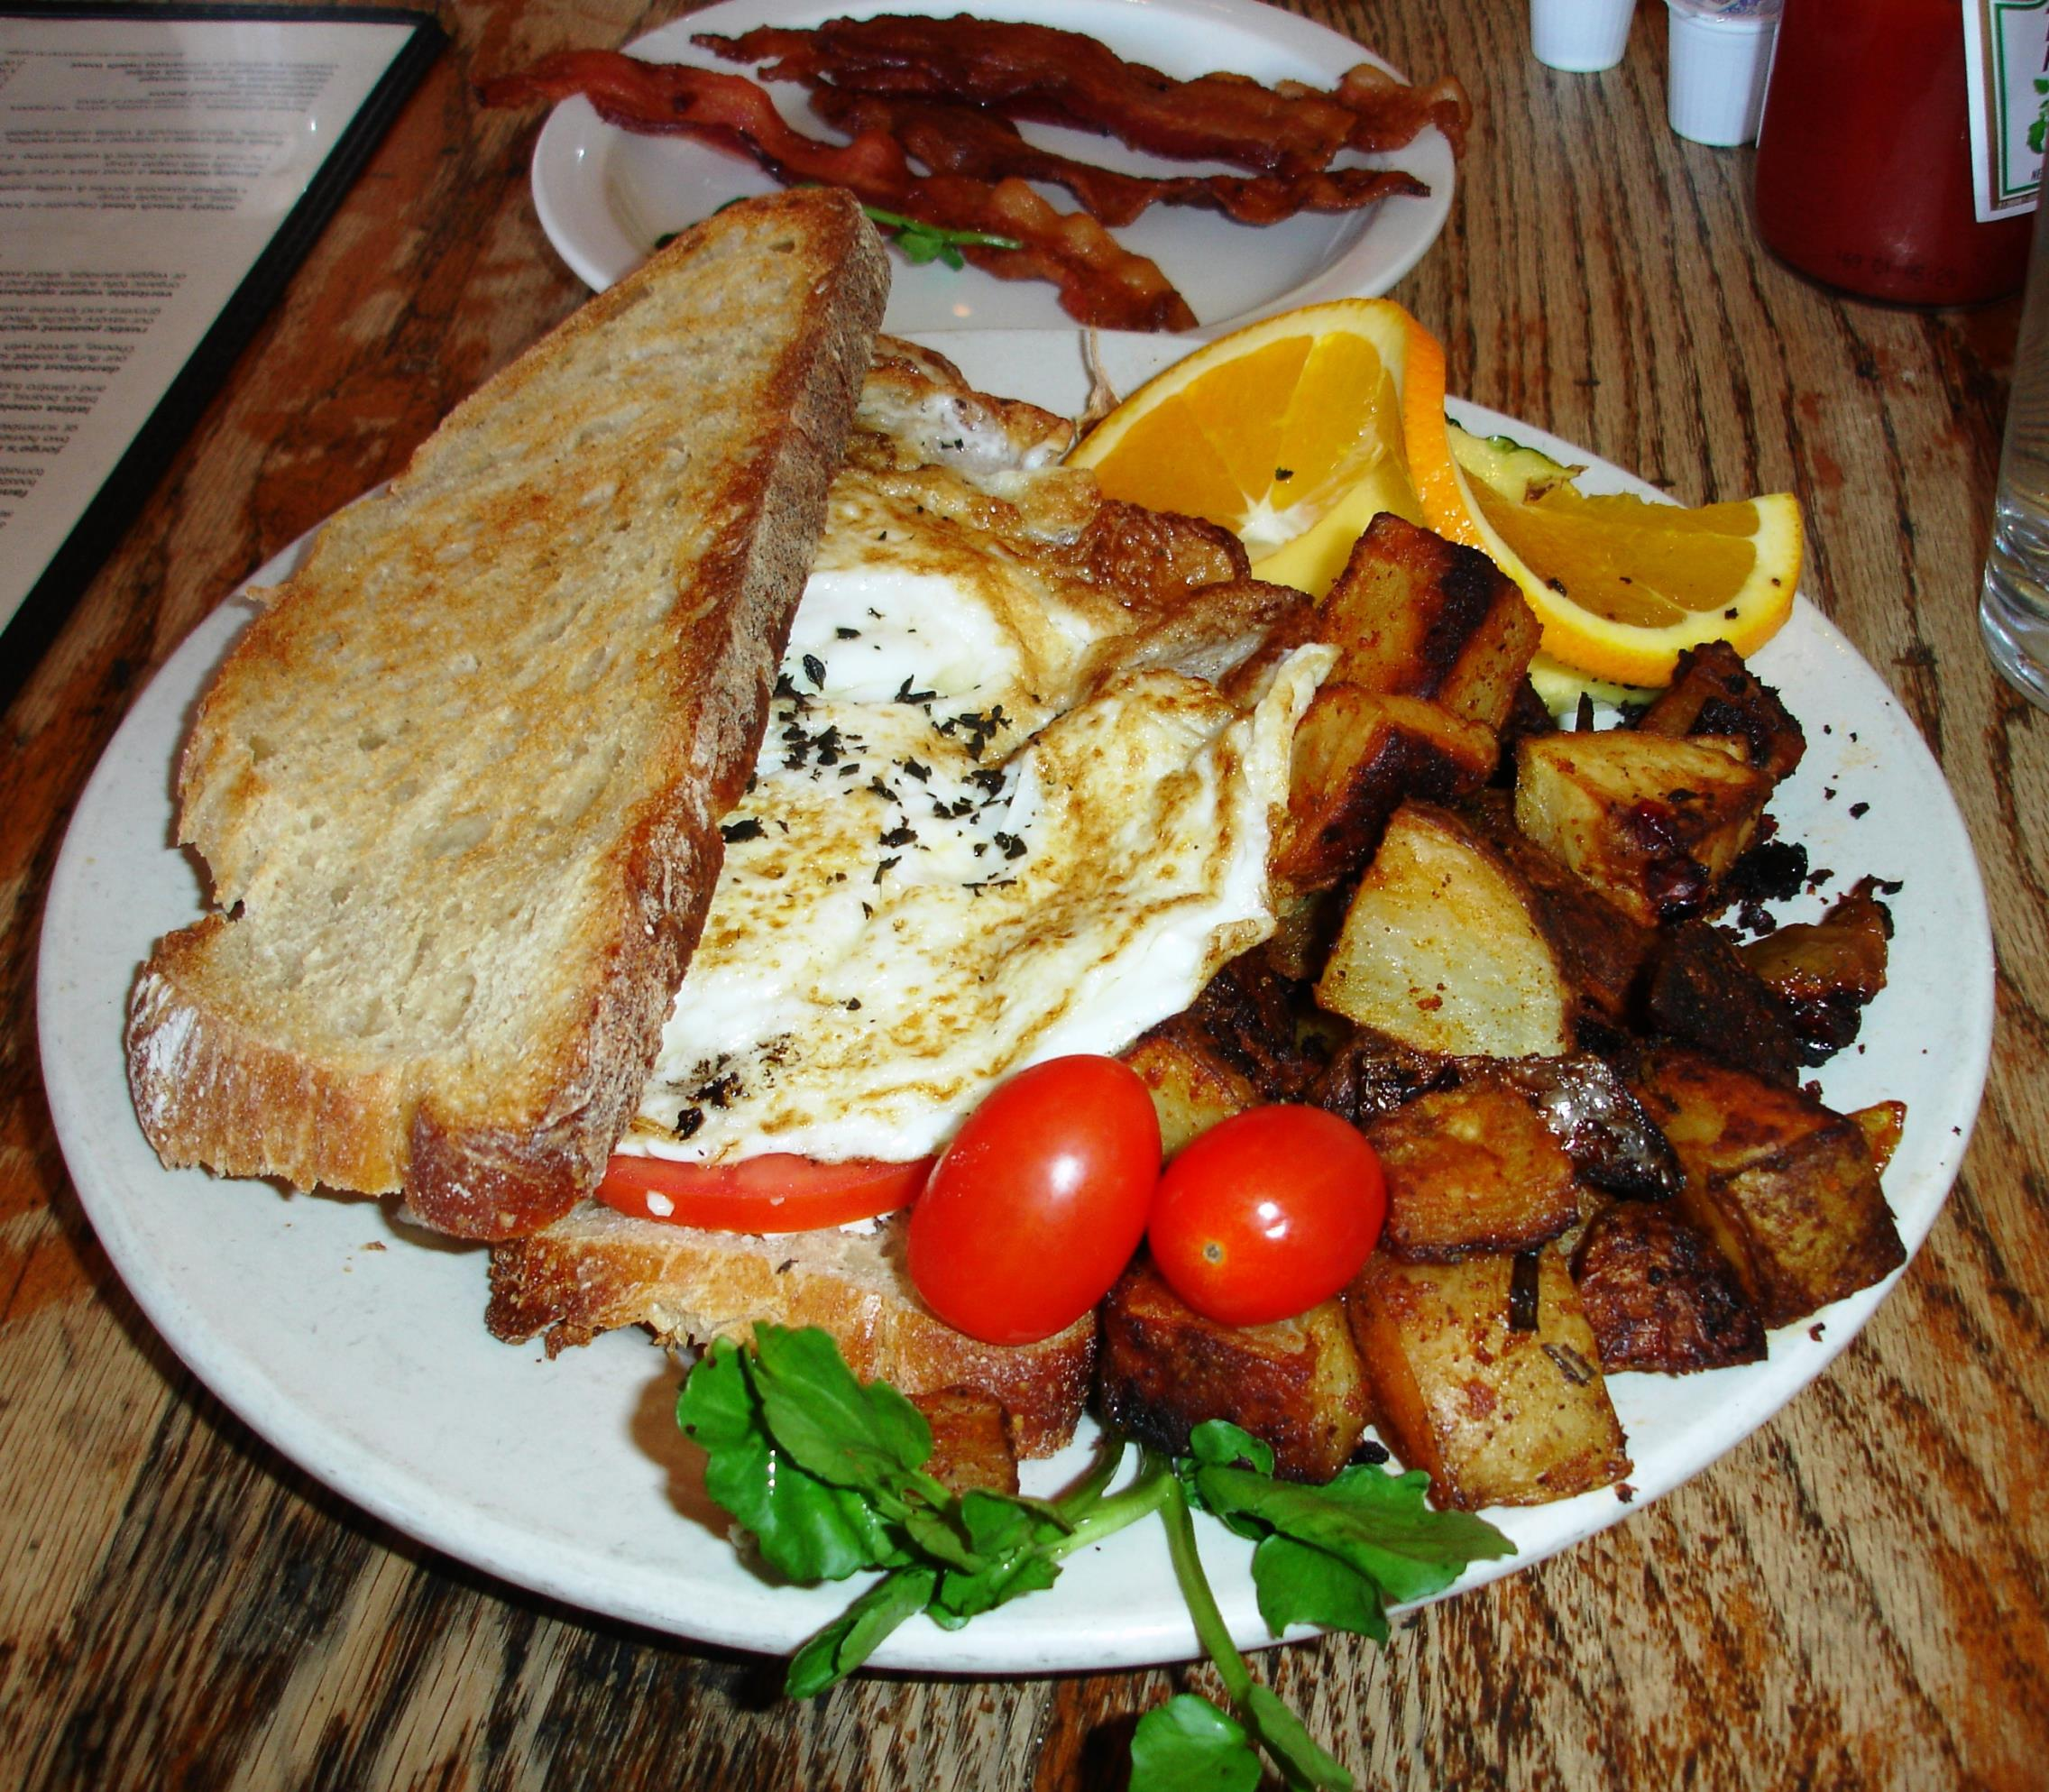 Fannie's Killer Fried Egg Sandwich is a showstopper of over-medium eggs and gorgonzola, with applewood-smoked bacon, tomatoes, and fresh thyme, on toasted sourdough. M. Henry's excellent house potatoes are served alongside.